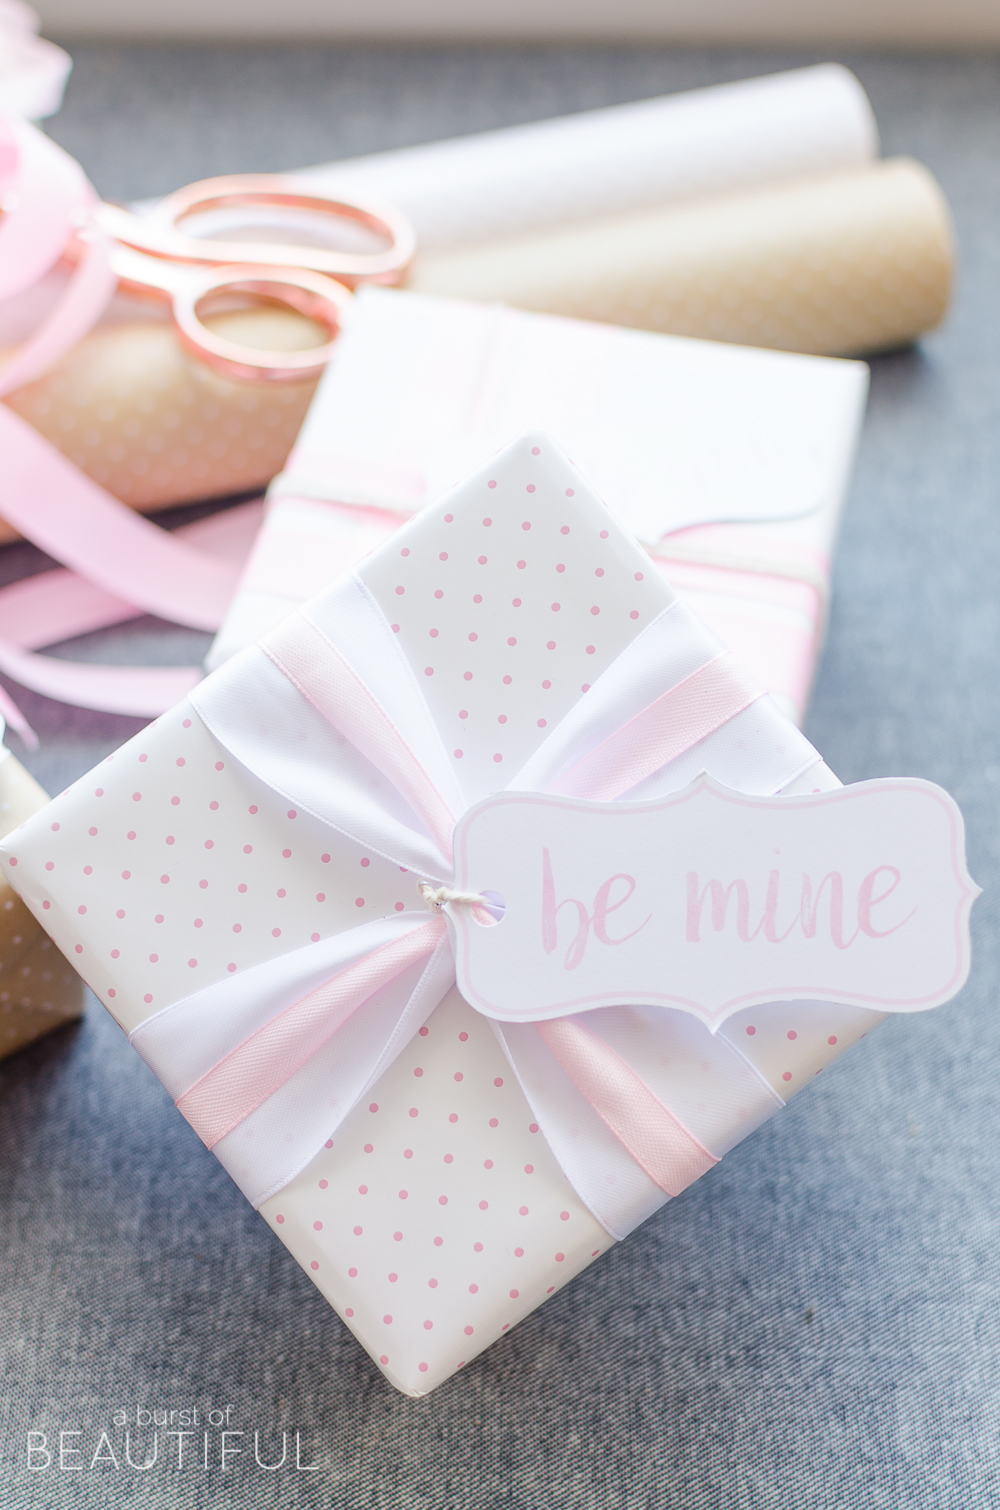 Valentine's Day Gift Tags | Free Printable: Add a special touch to gifts with these sweet Valentine's Day gift tags